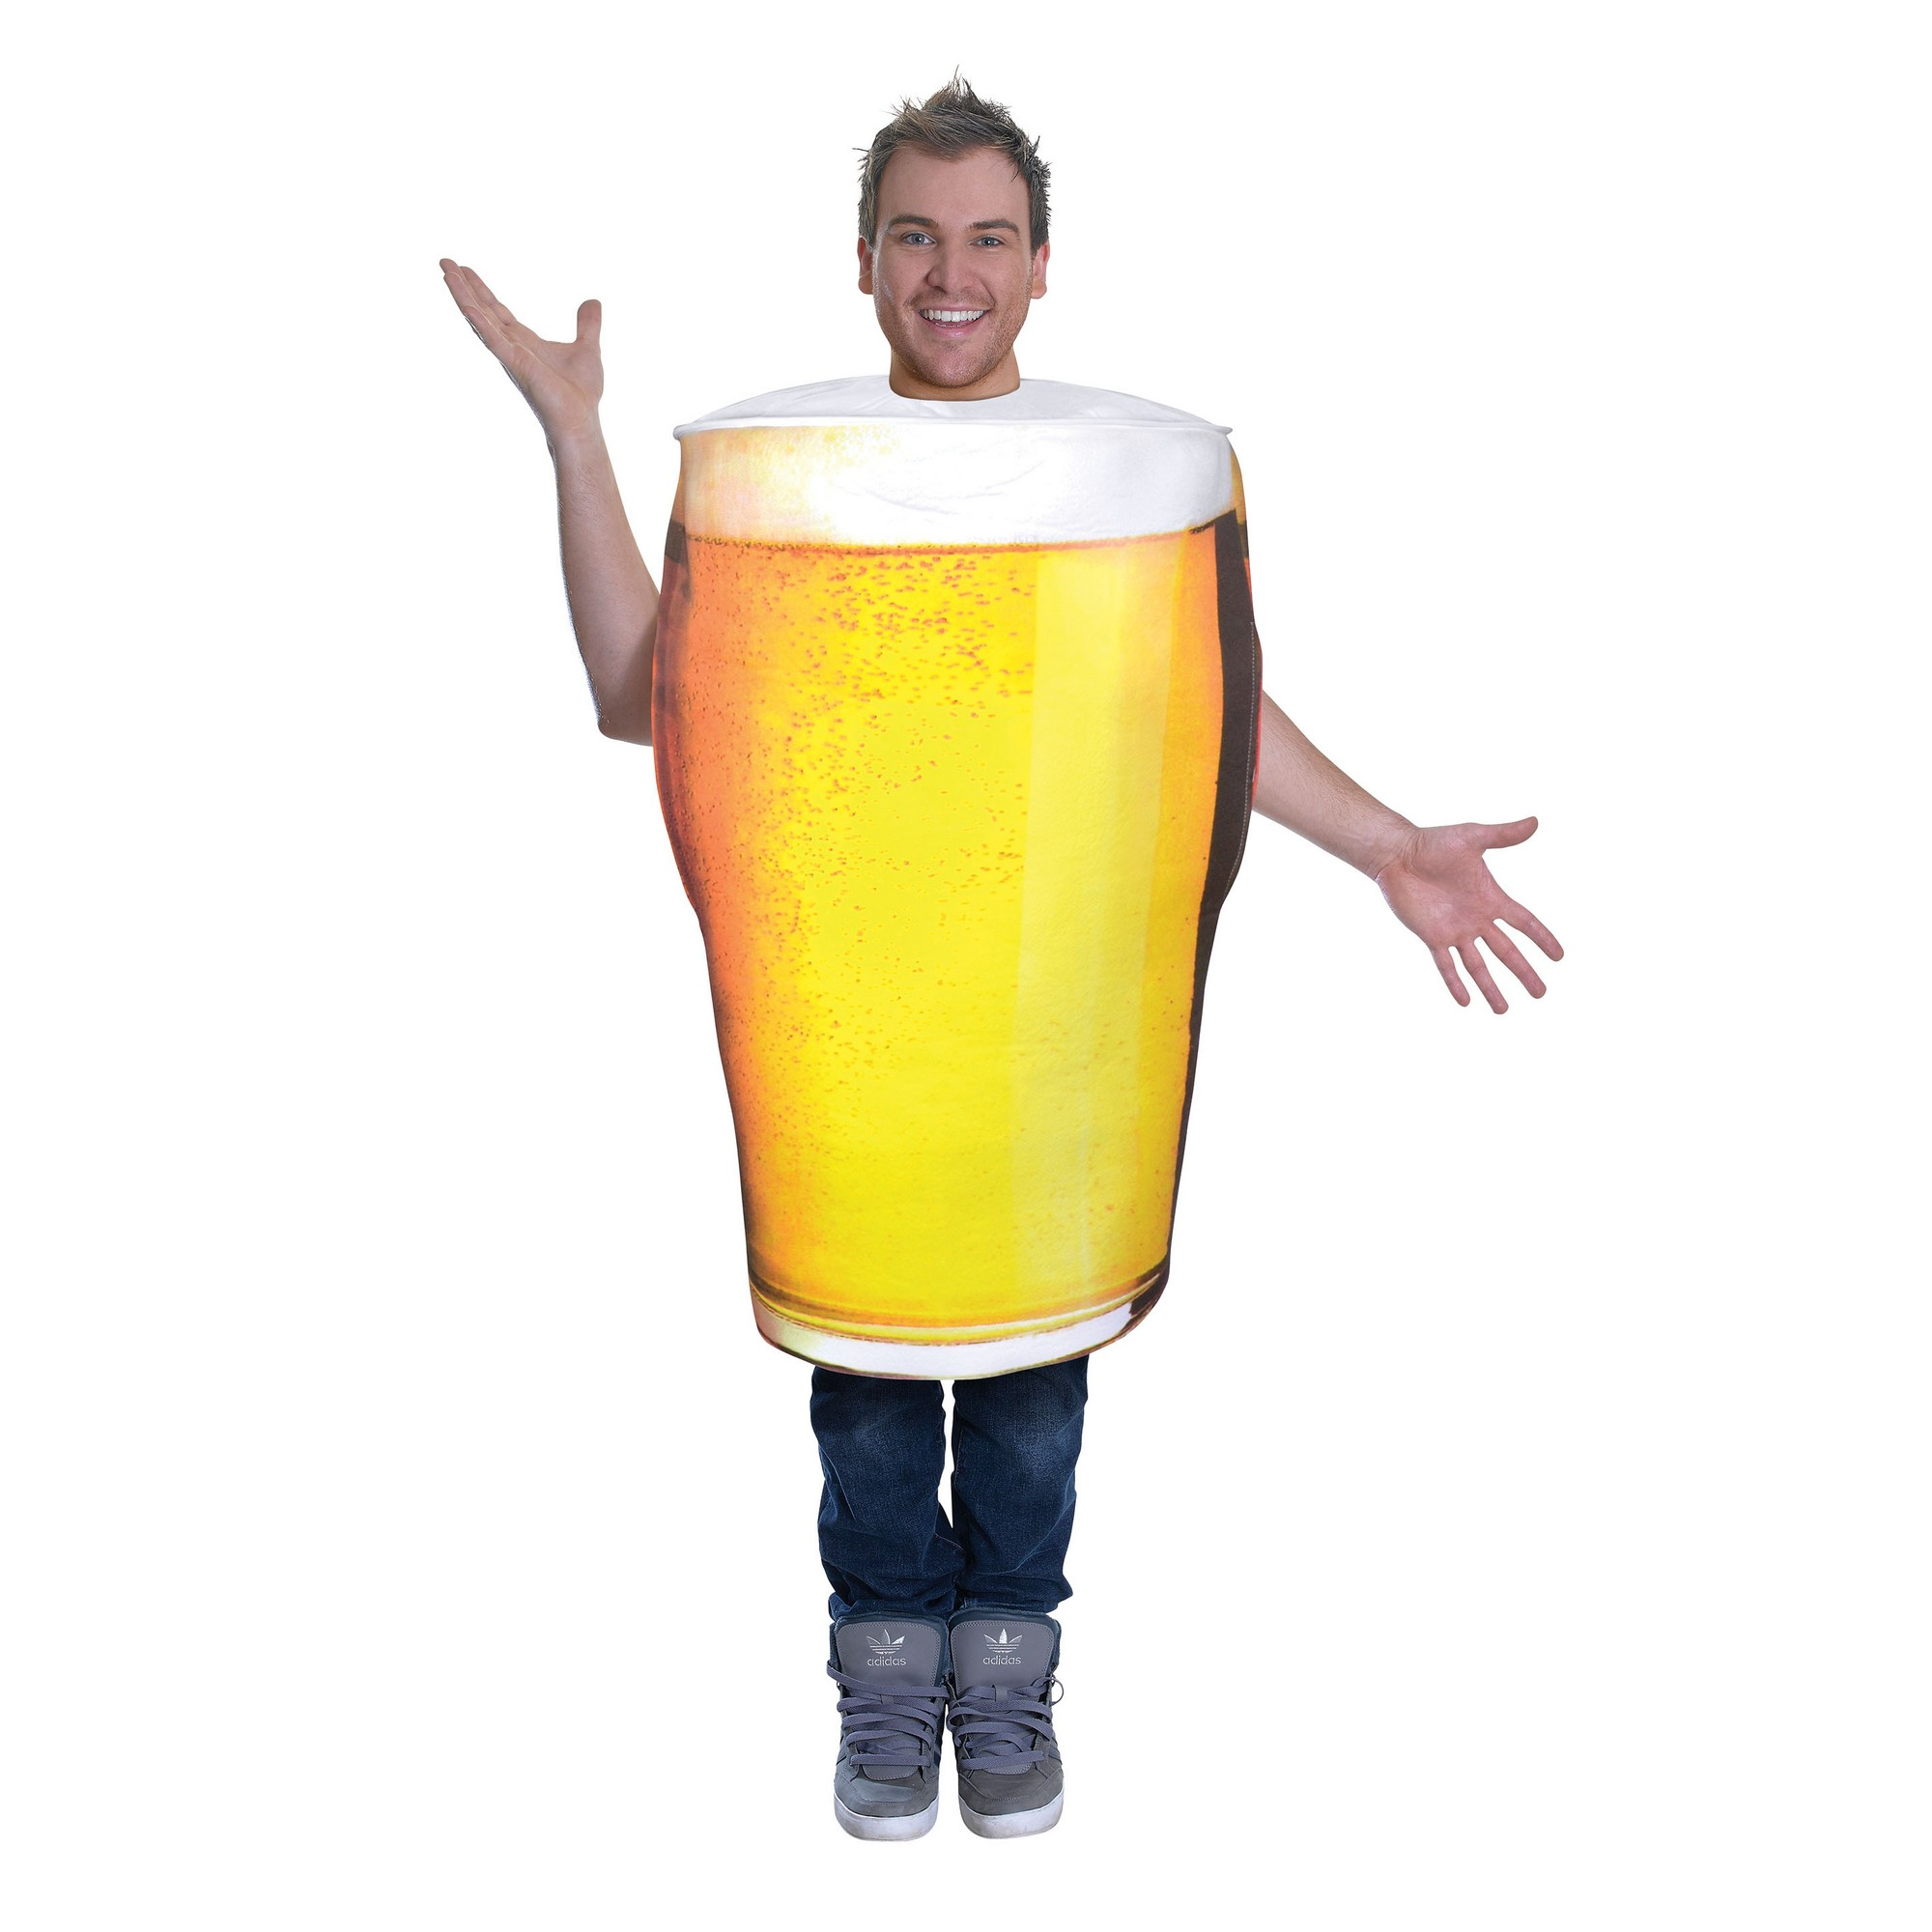 Bristol Novelty Unisex Adults Pint of Beer Costume (One Size) (Yellow)